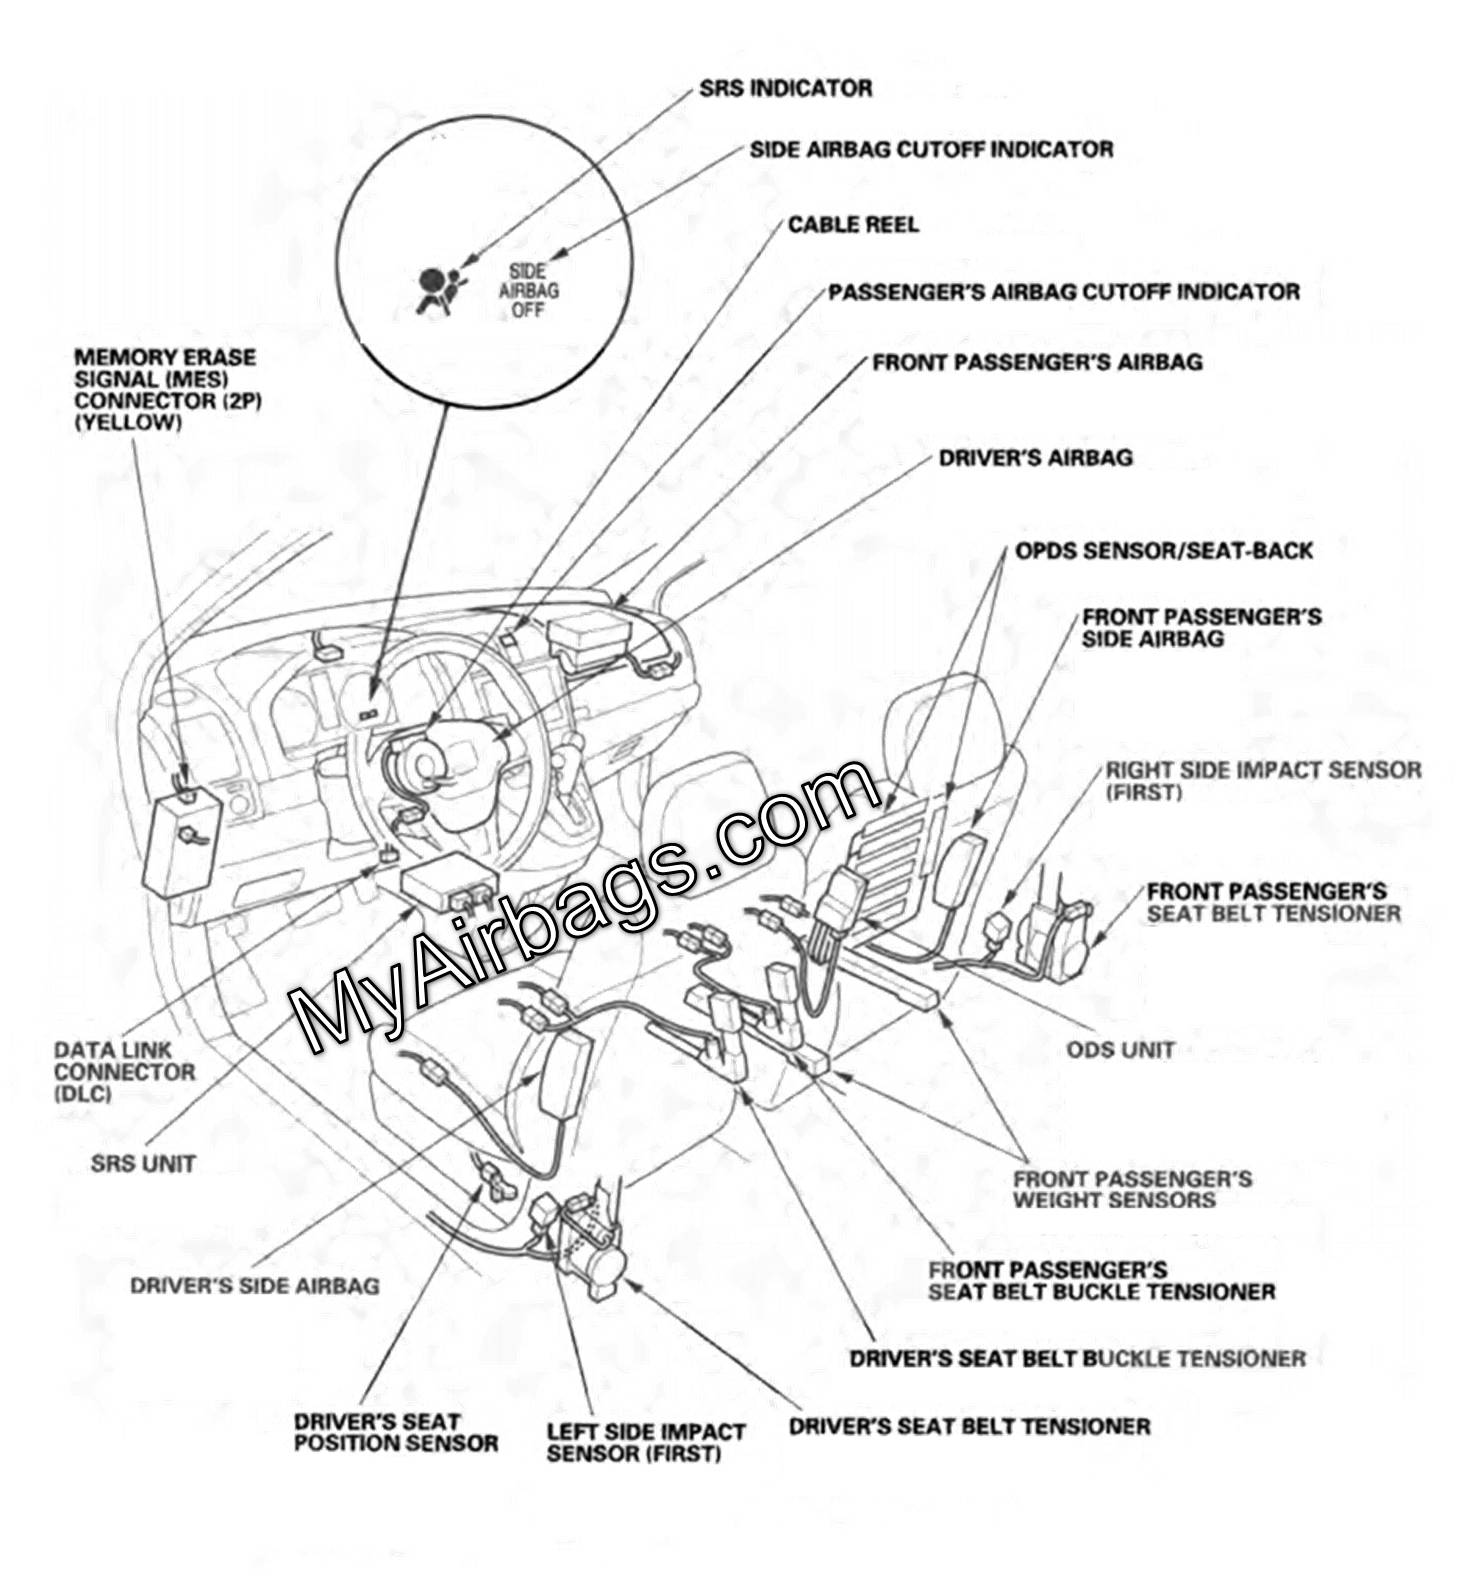 Discussion T26390 ds545467 further 1965 Ford Truck Electrical Wiring in addition 2000 Grand Marquis Heater Valve Location 168135 besides 97 Ford Ranger Fuel Filter Location likewise Dodge Nitro Radio Wiring Diagram. on 1999 ford f 150 dash removal diagram